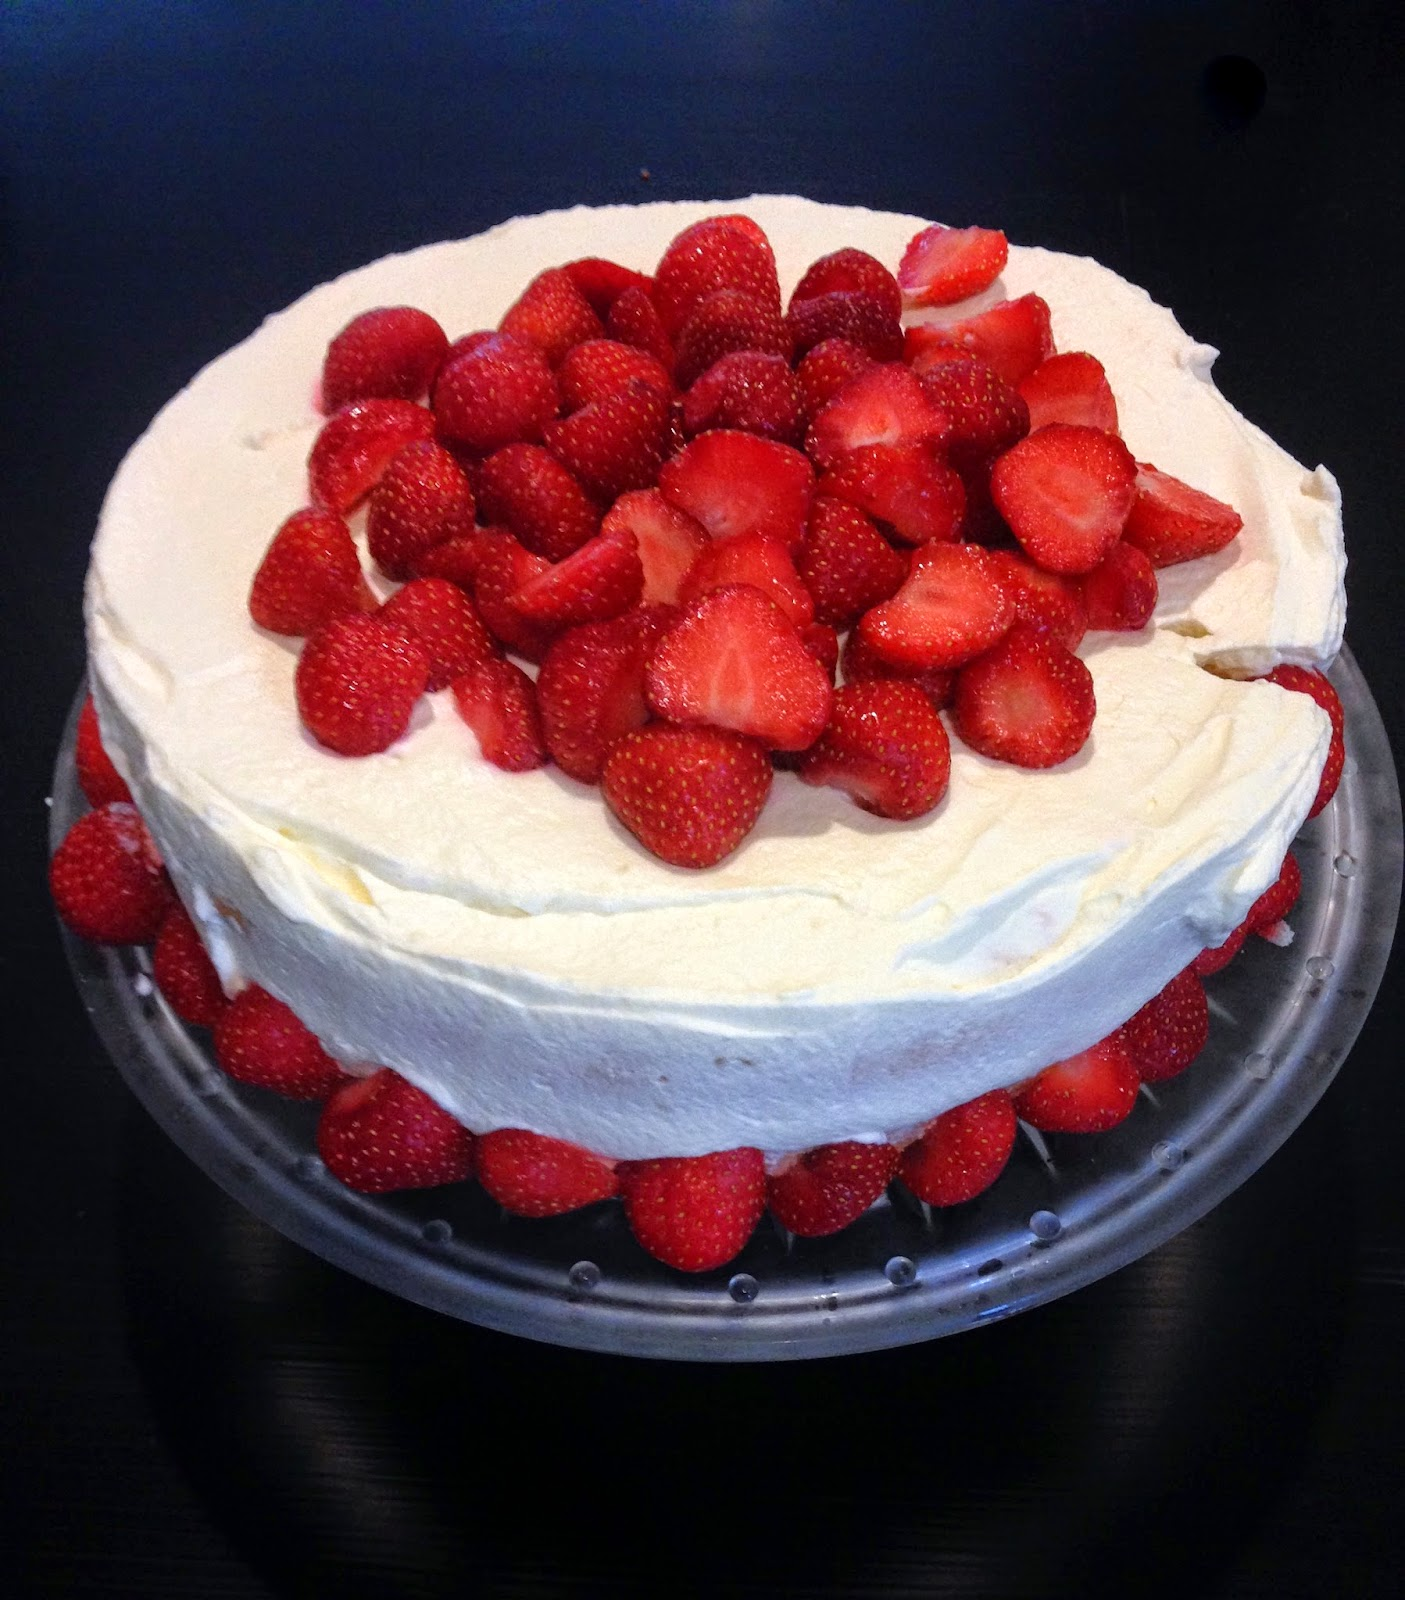 A picture of my strawberry birthday cake